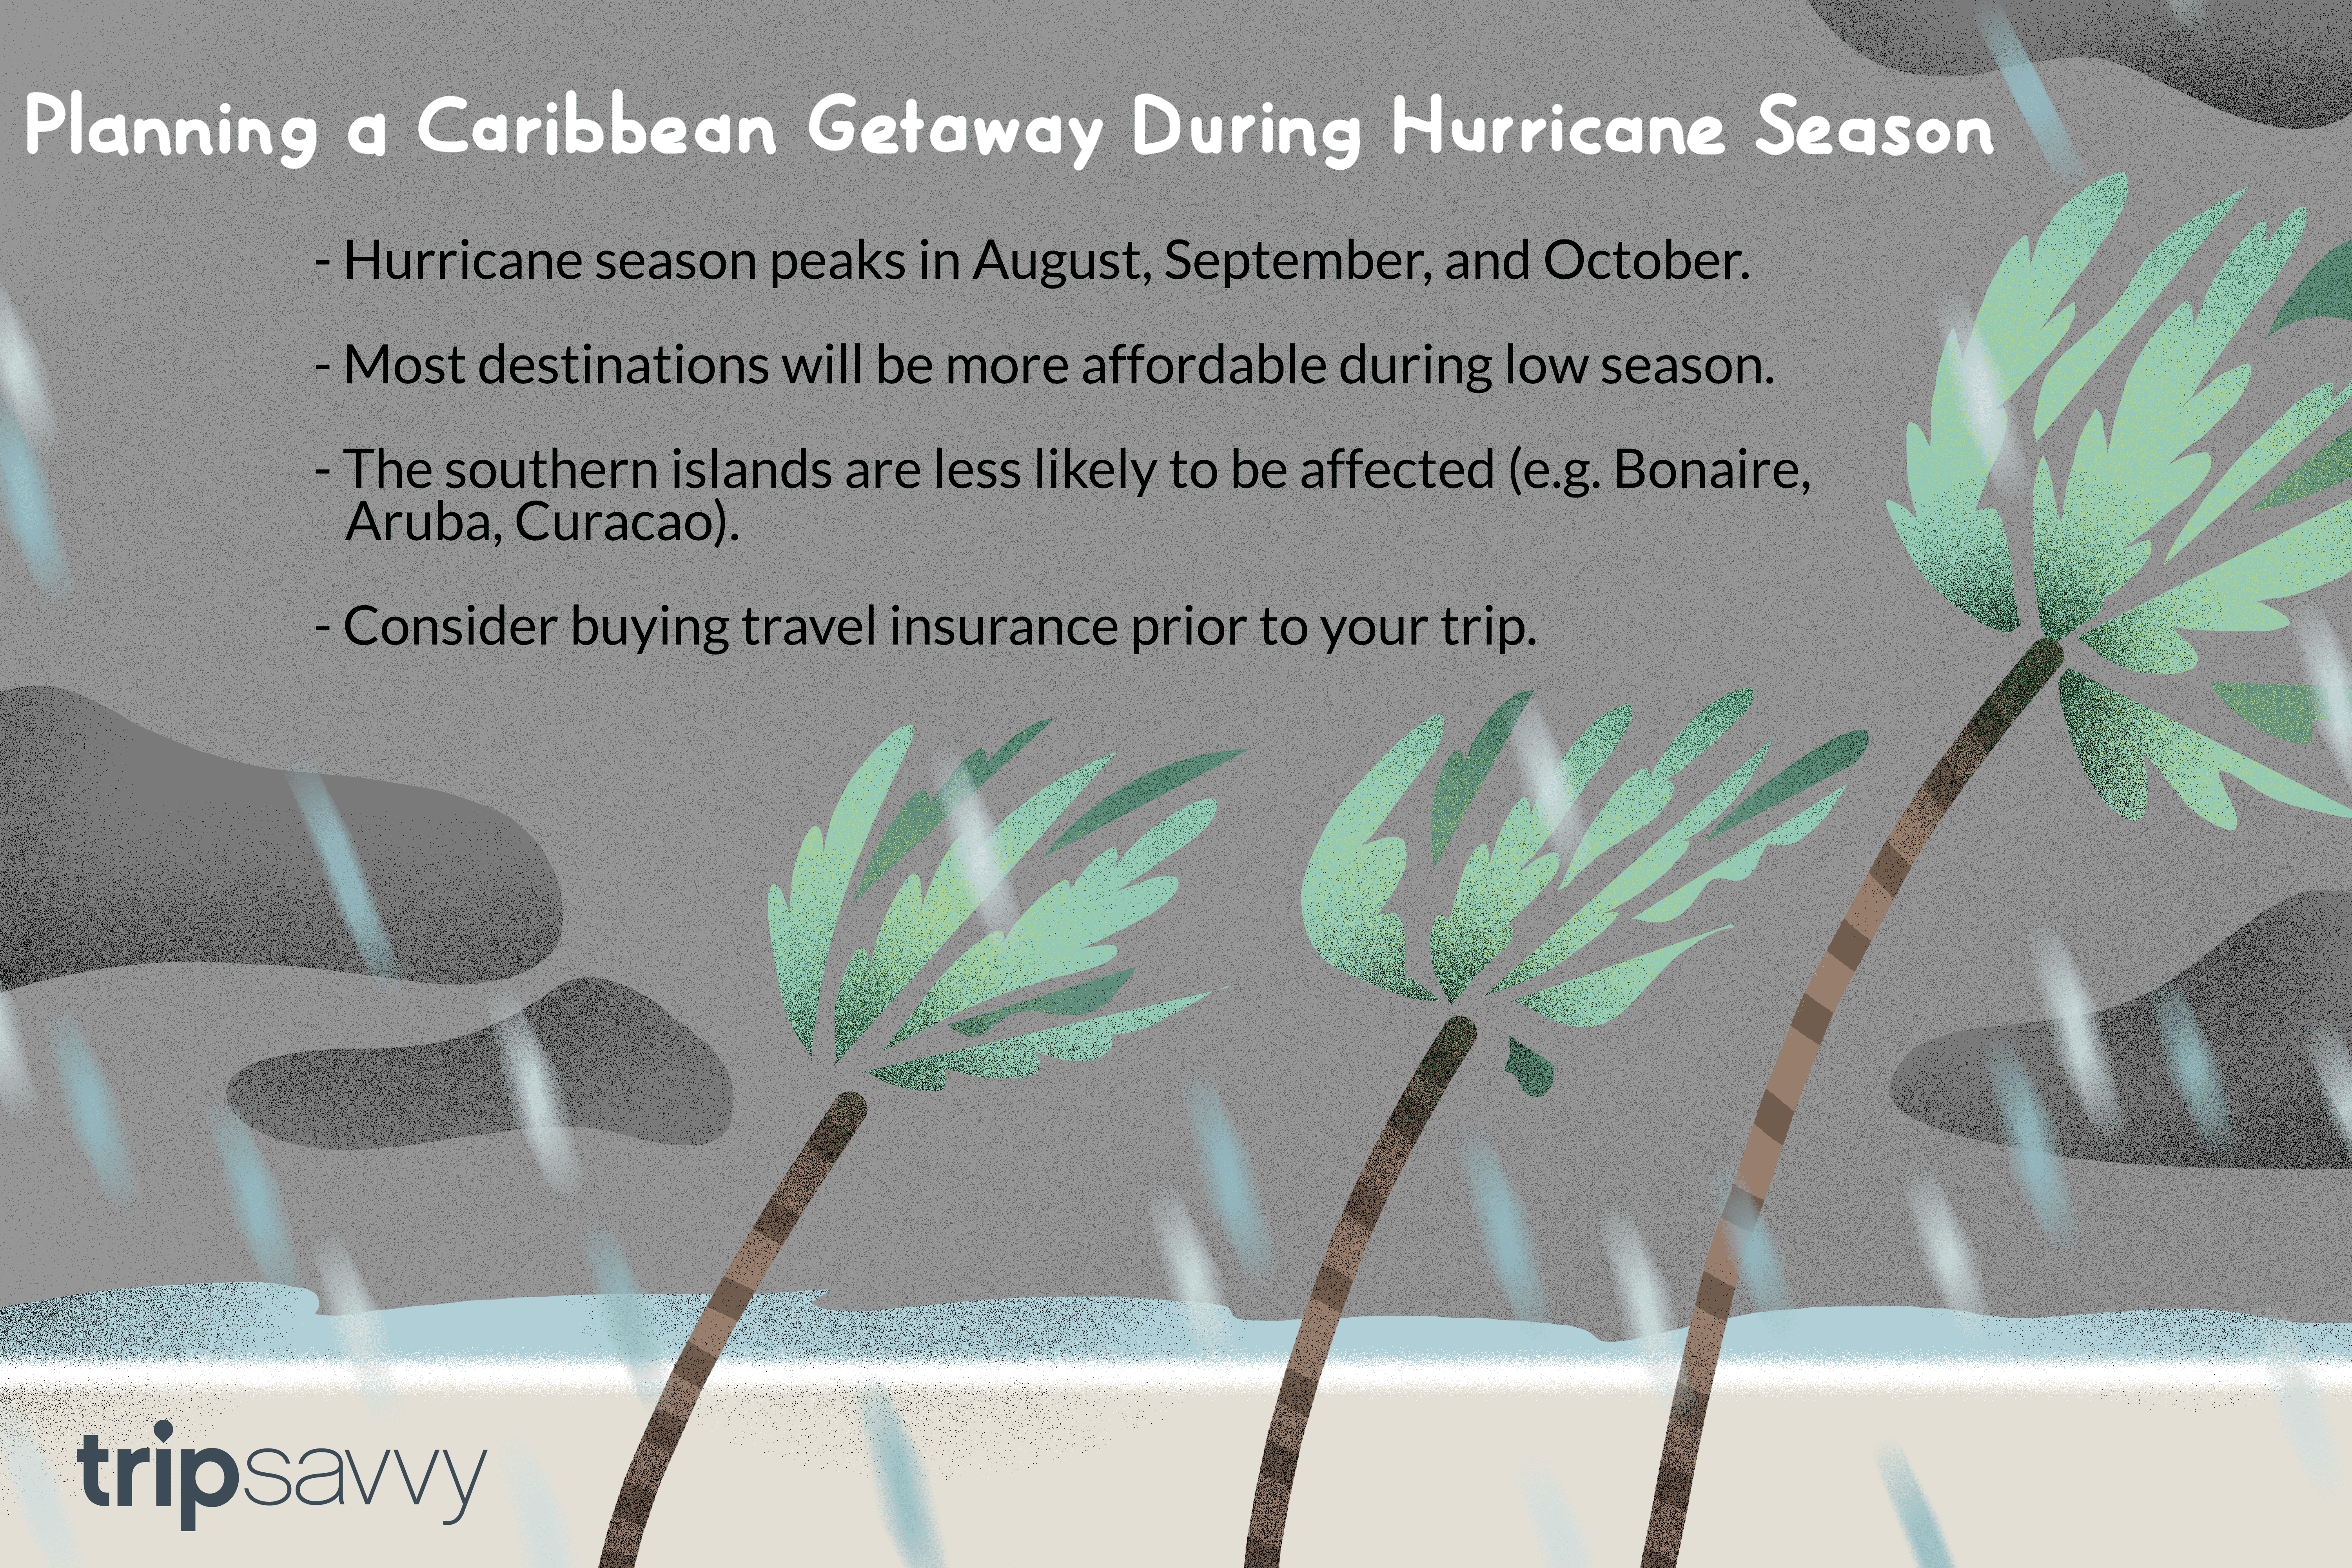 How to Travel to the Caribbean During Hurricane Season